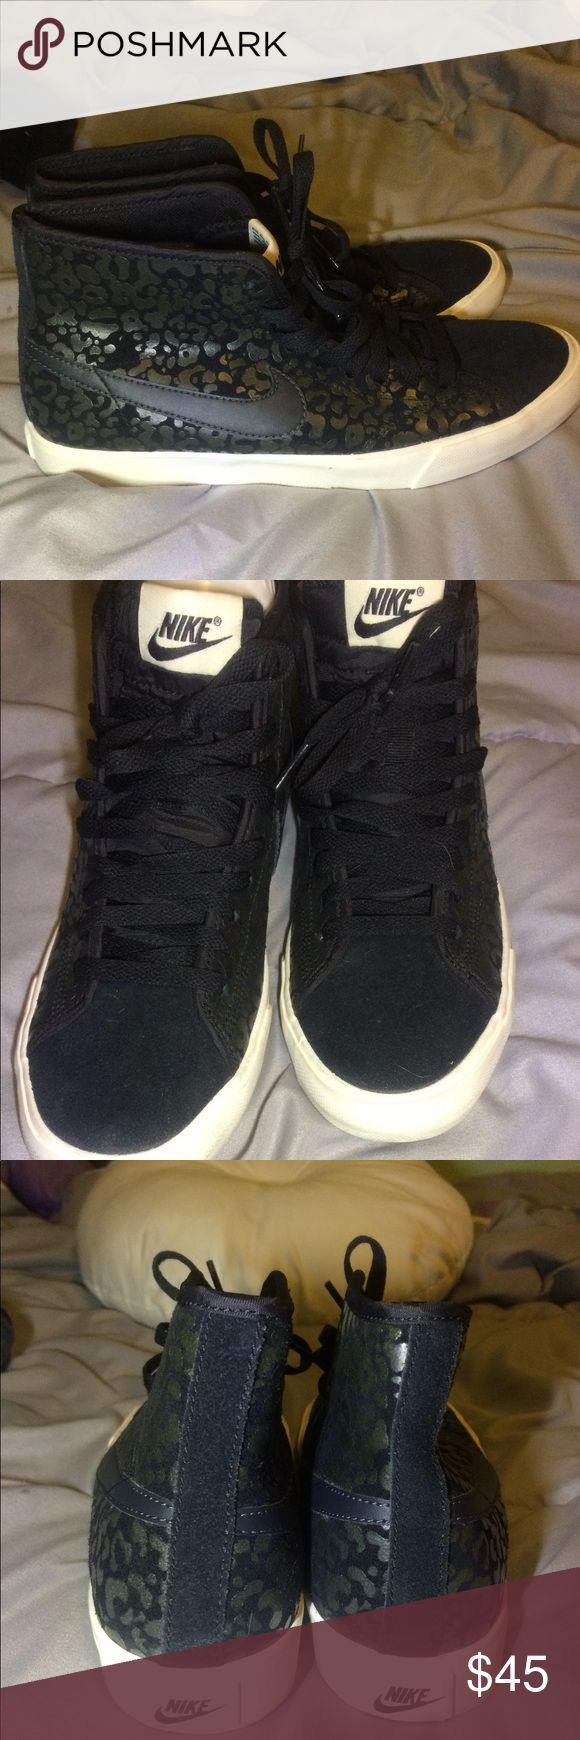 Black Nike Leopard Print Sneakers Nike Primo Court Leopard Print Suede Black High Top Sneakers Nike Shoes Sneakers